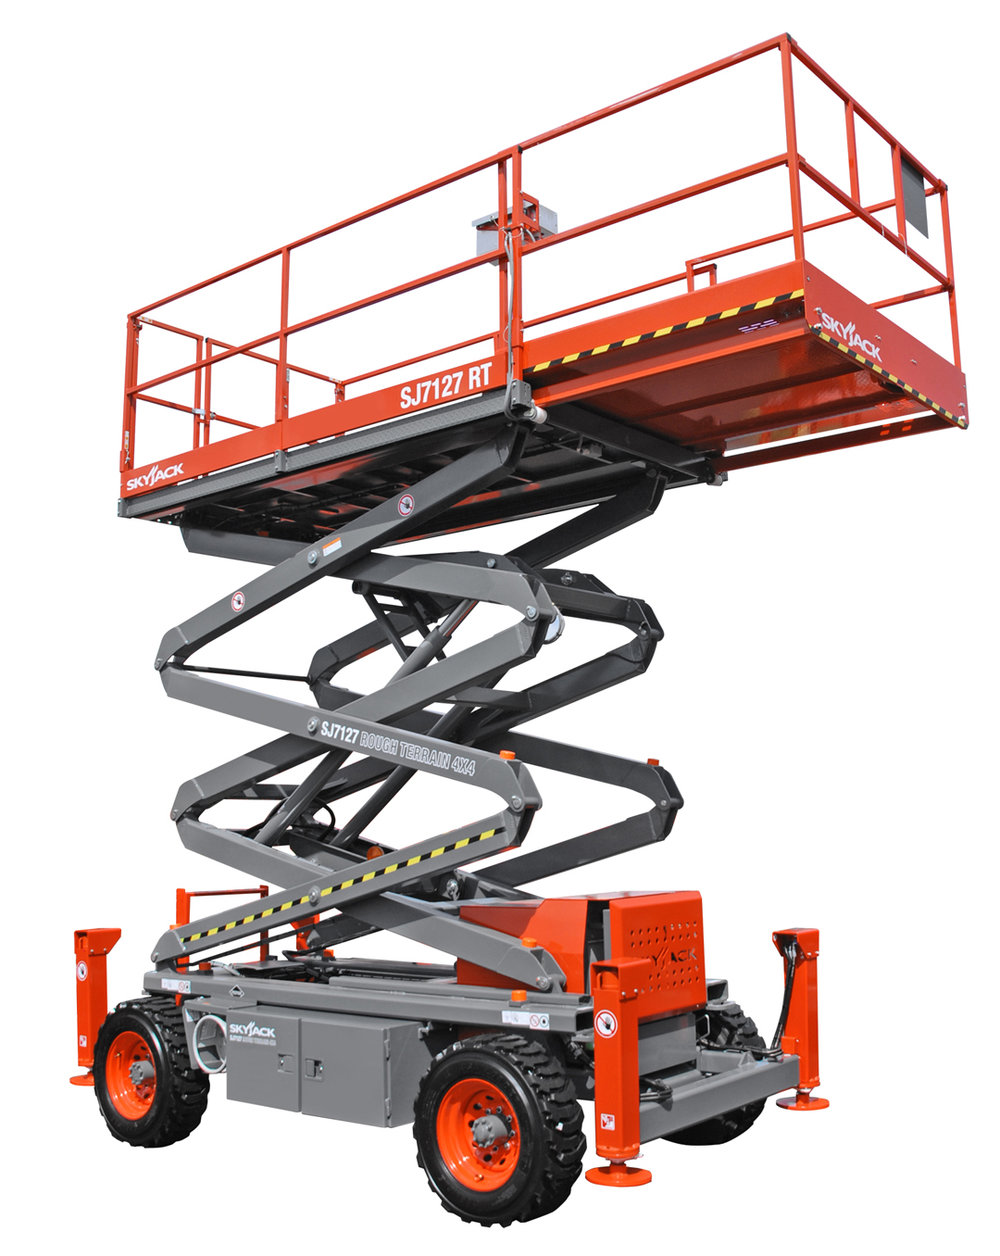 Skyjack 7127 Rough Terrain Scissor Lift